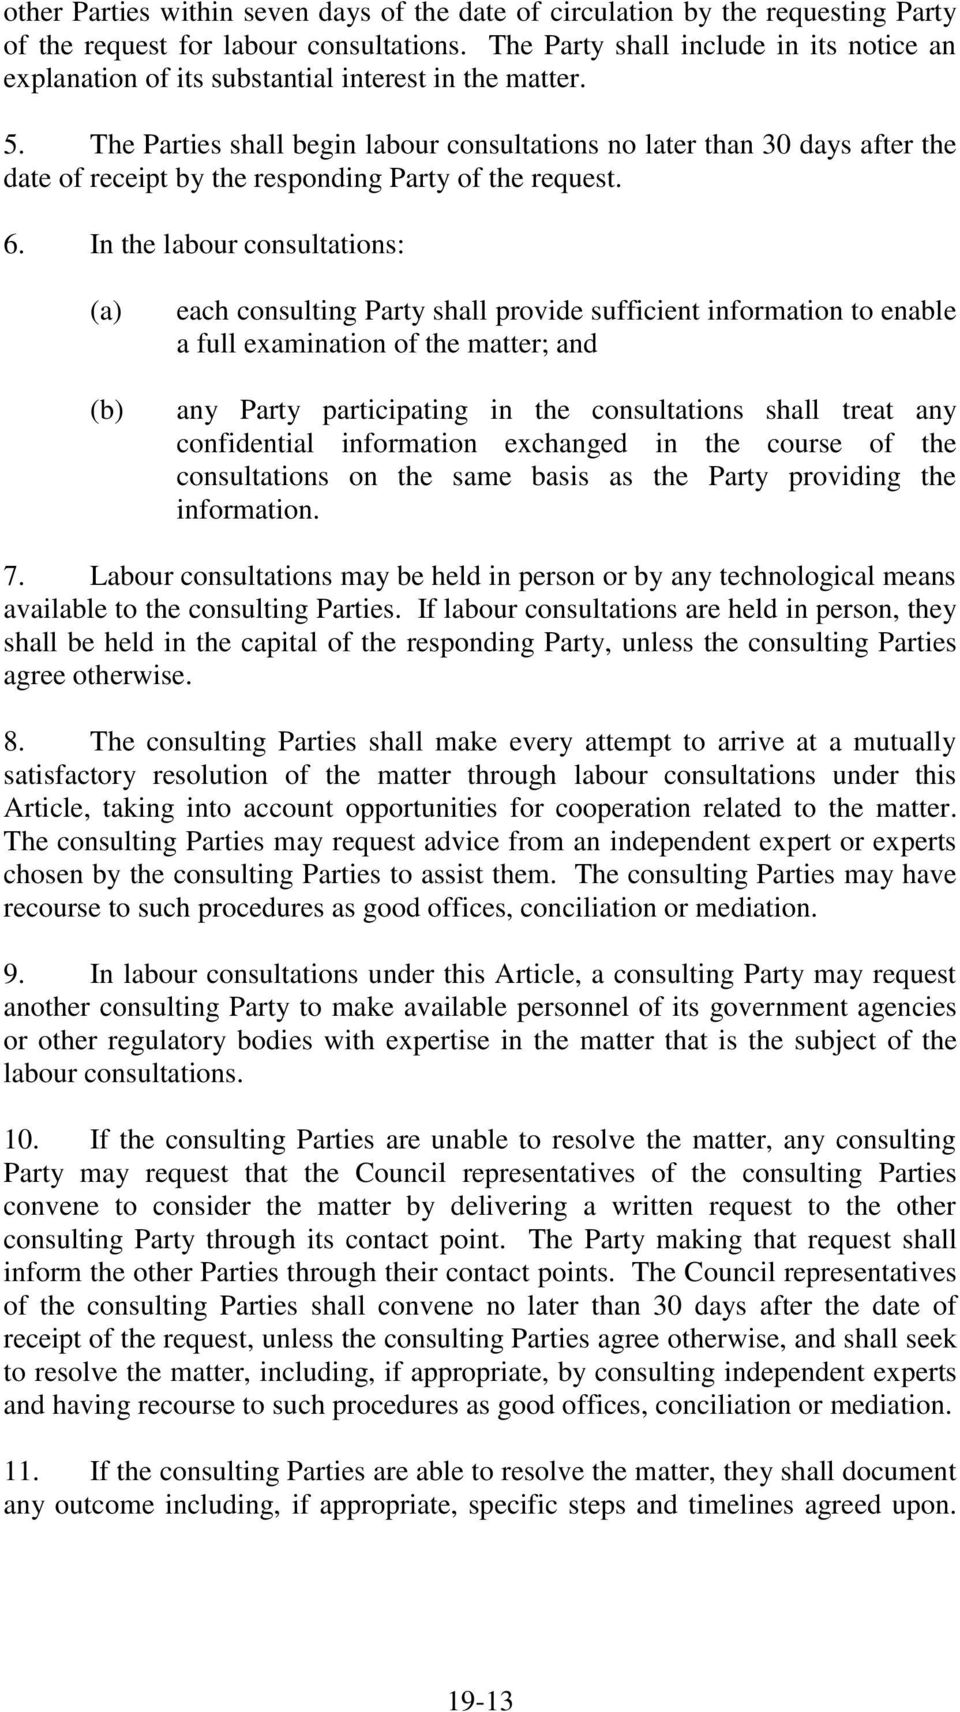 The Parties shall begin labour consultations no later than 30 days after the date of receipt by the responding Party of the request. 6.